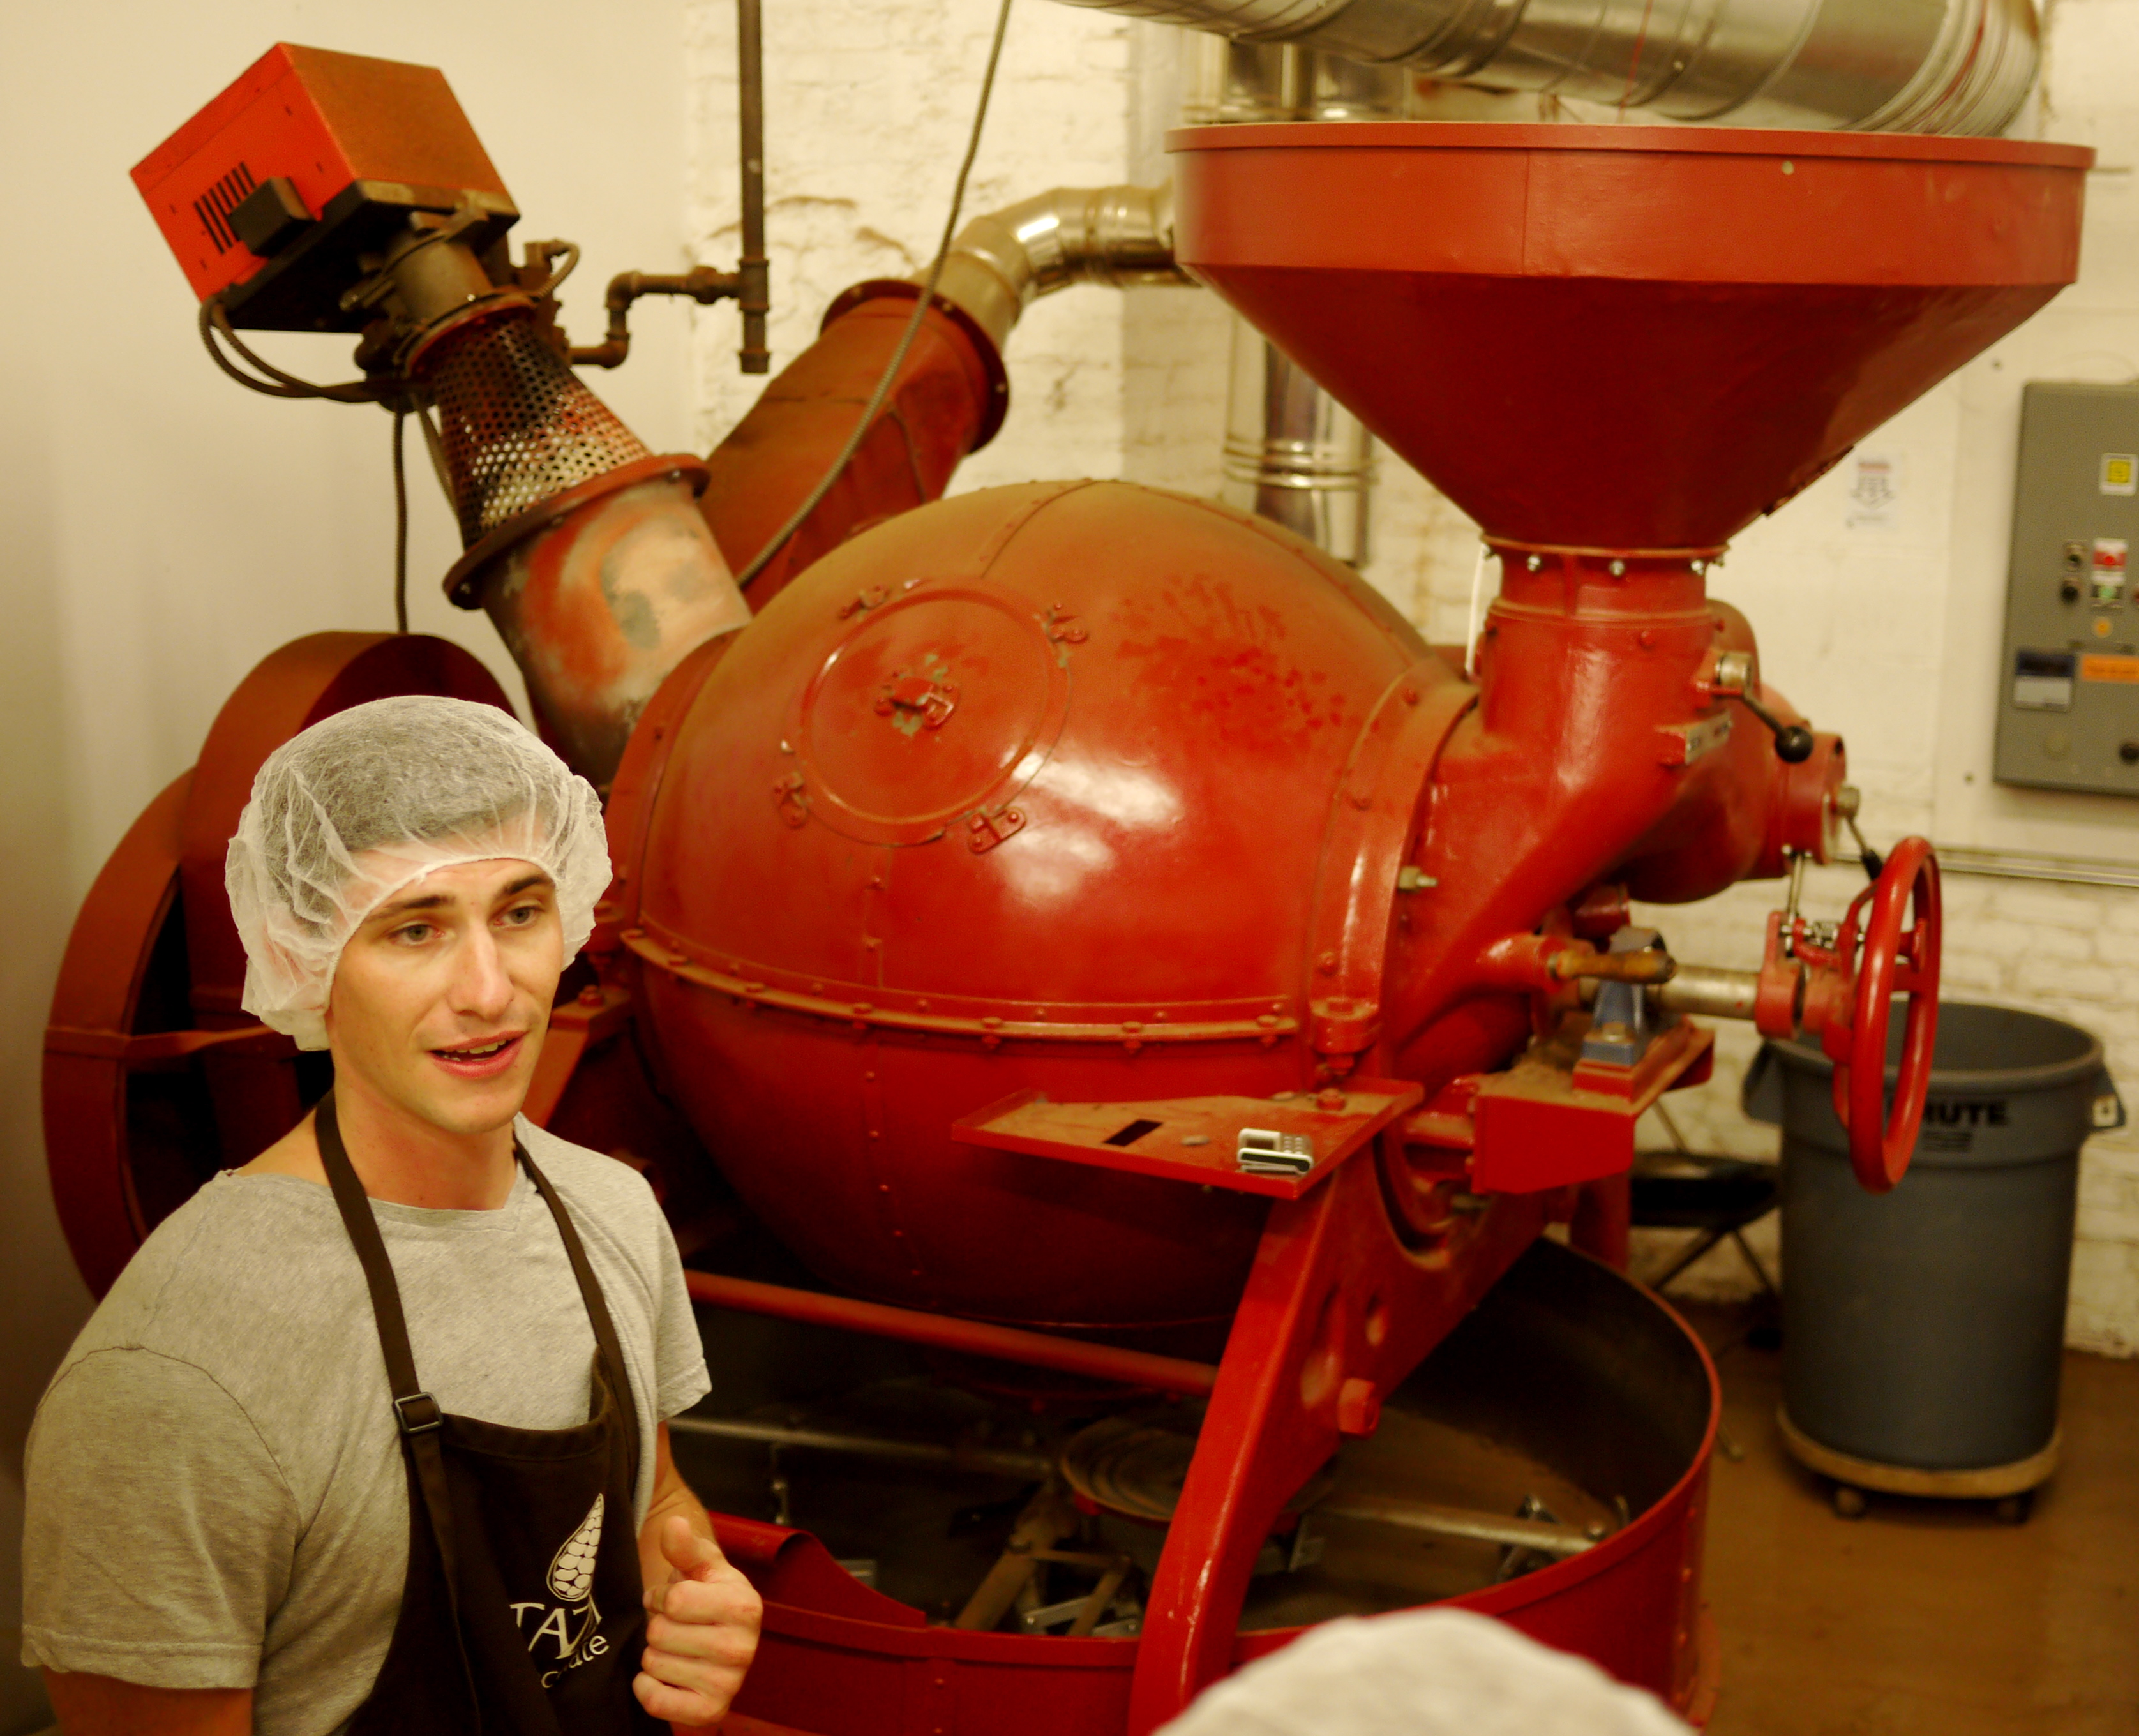 A day at the Taza Chocolate factory – City Feed and Supply